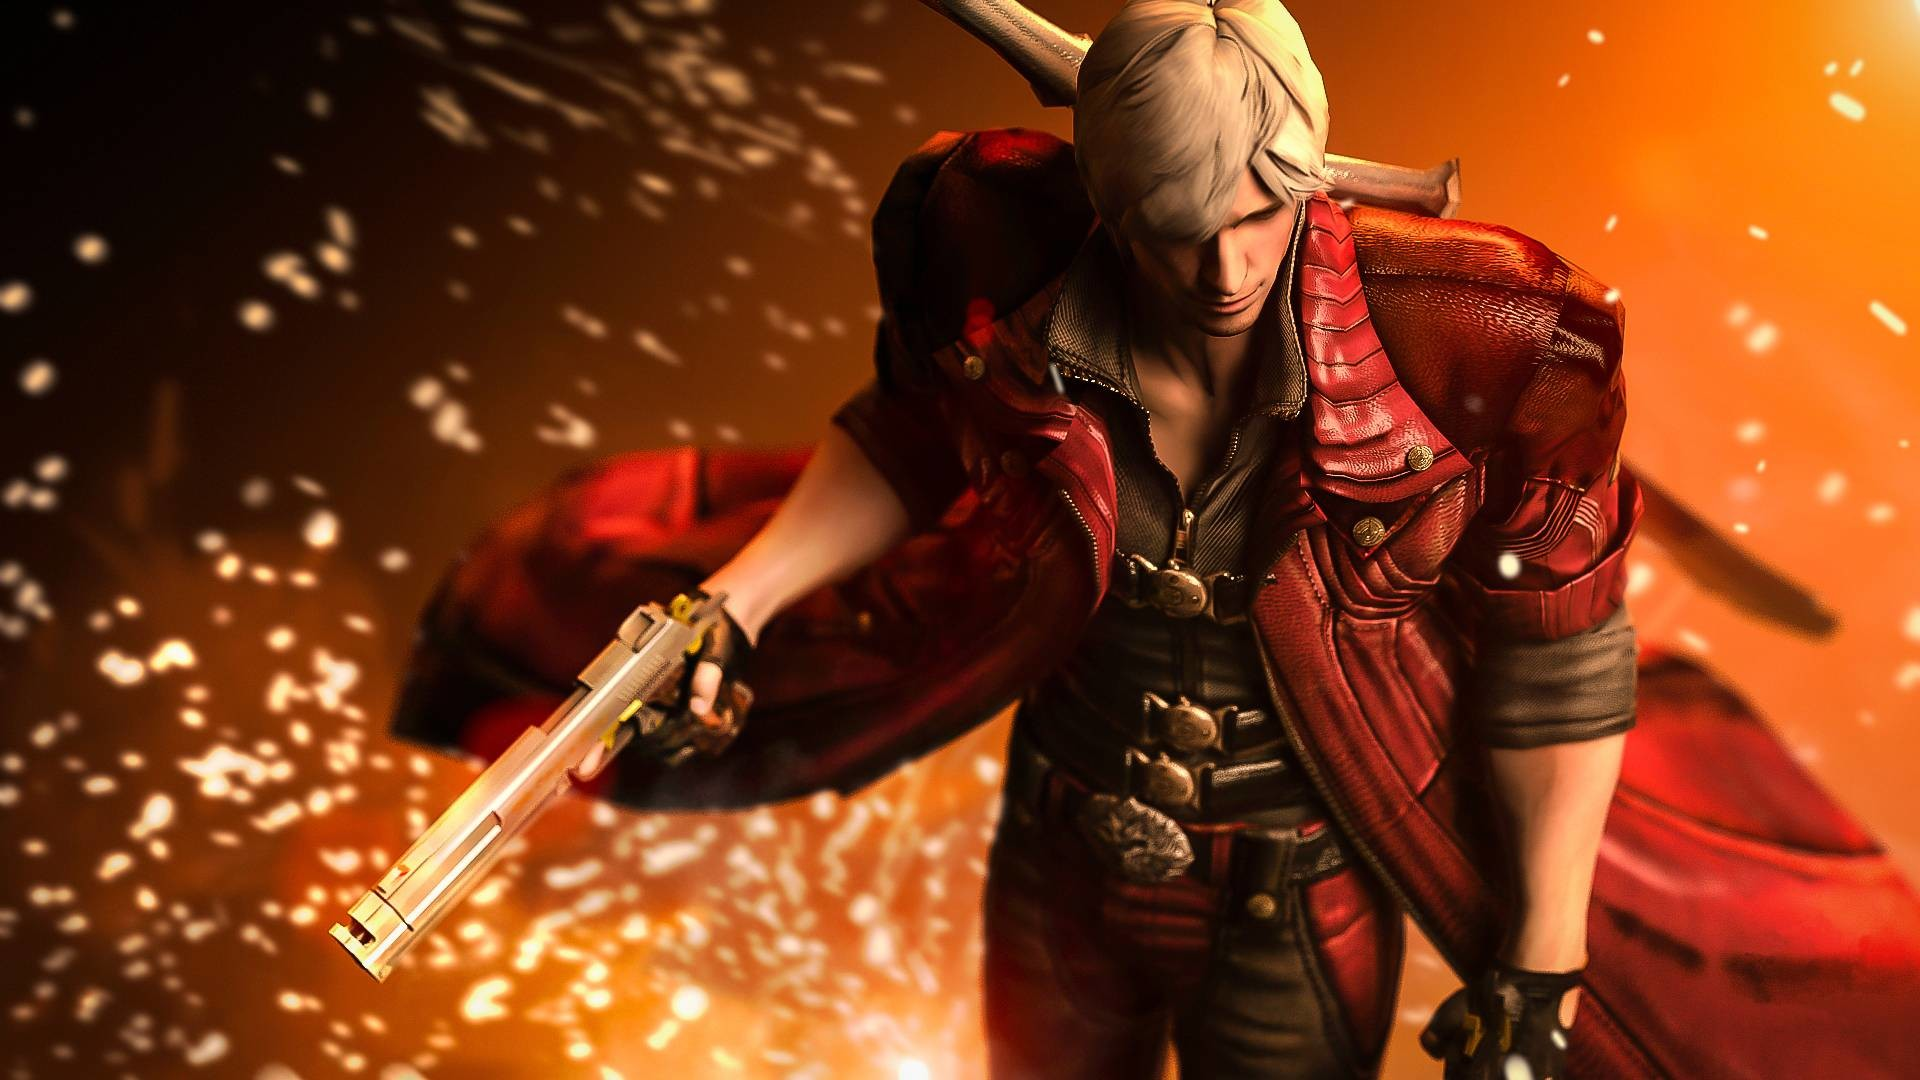 Dante Devil May Cry Wallpaper Wallpapertag